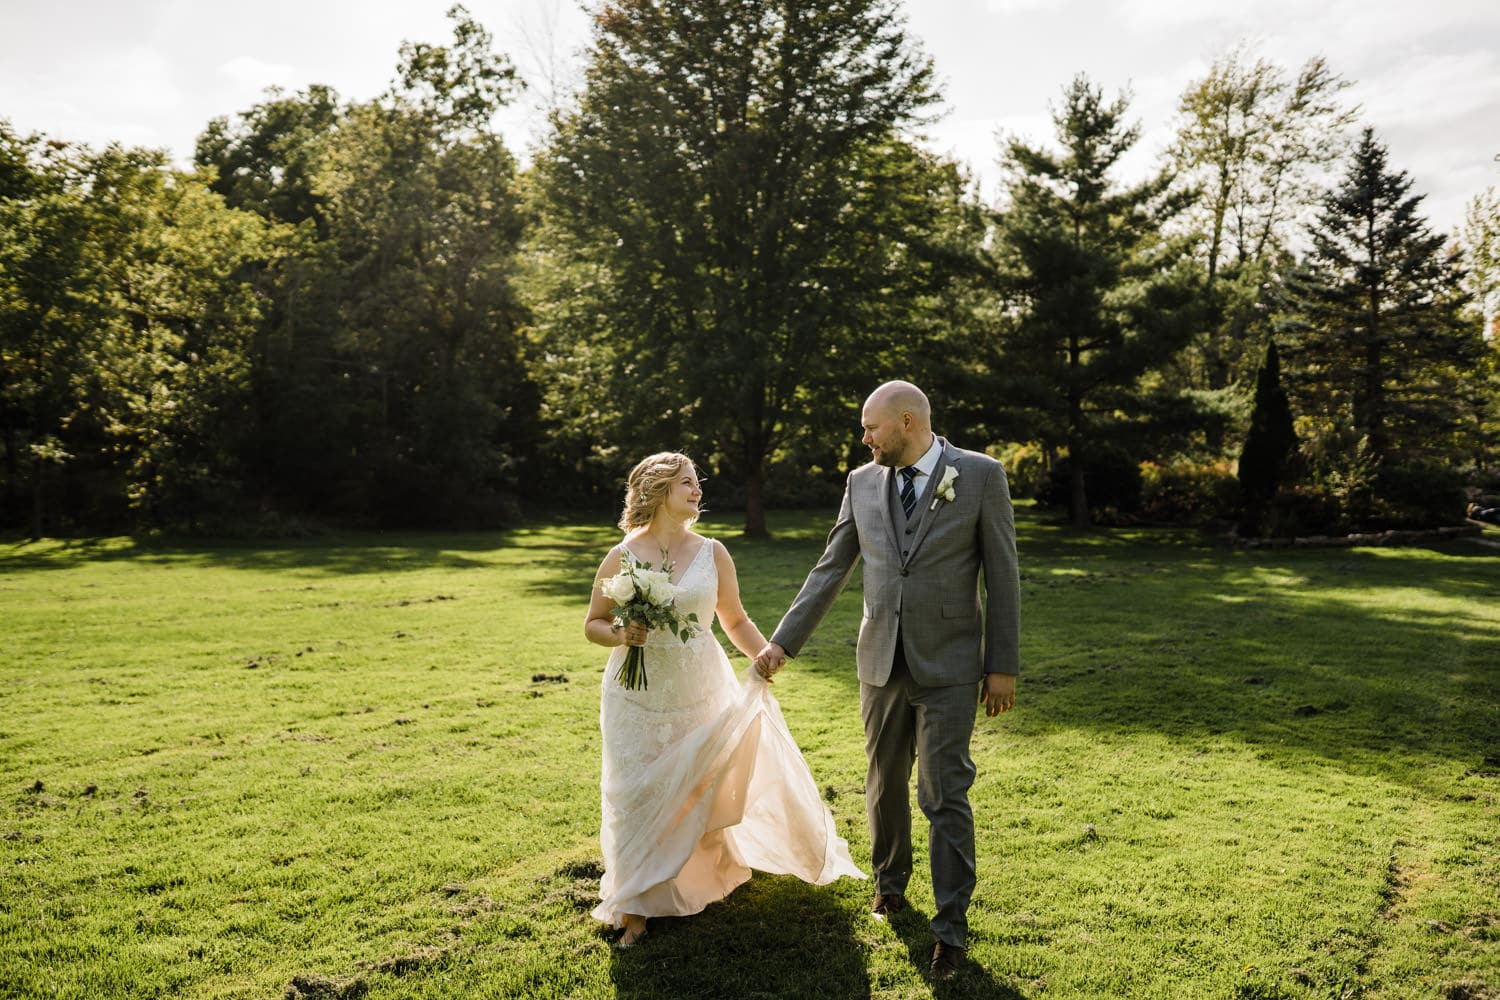 couple walk through park together after their wedding ceremony